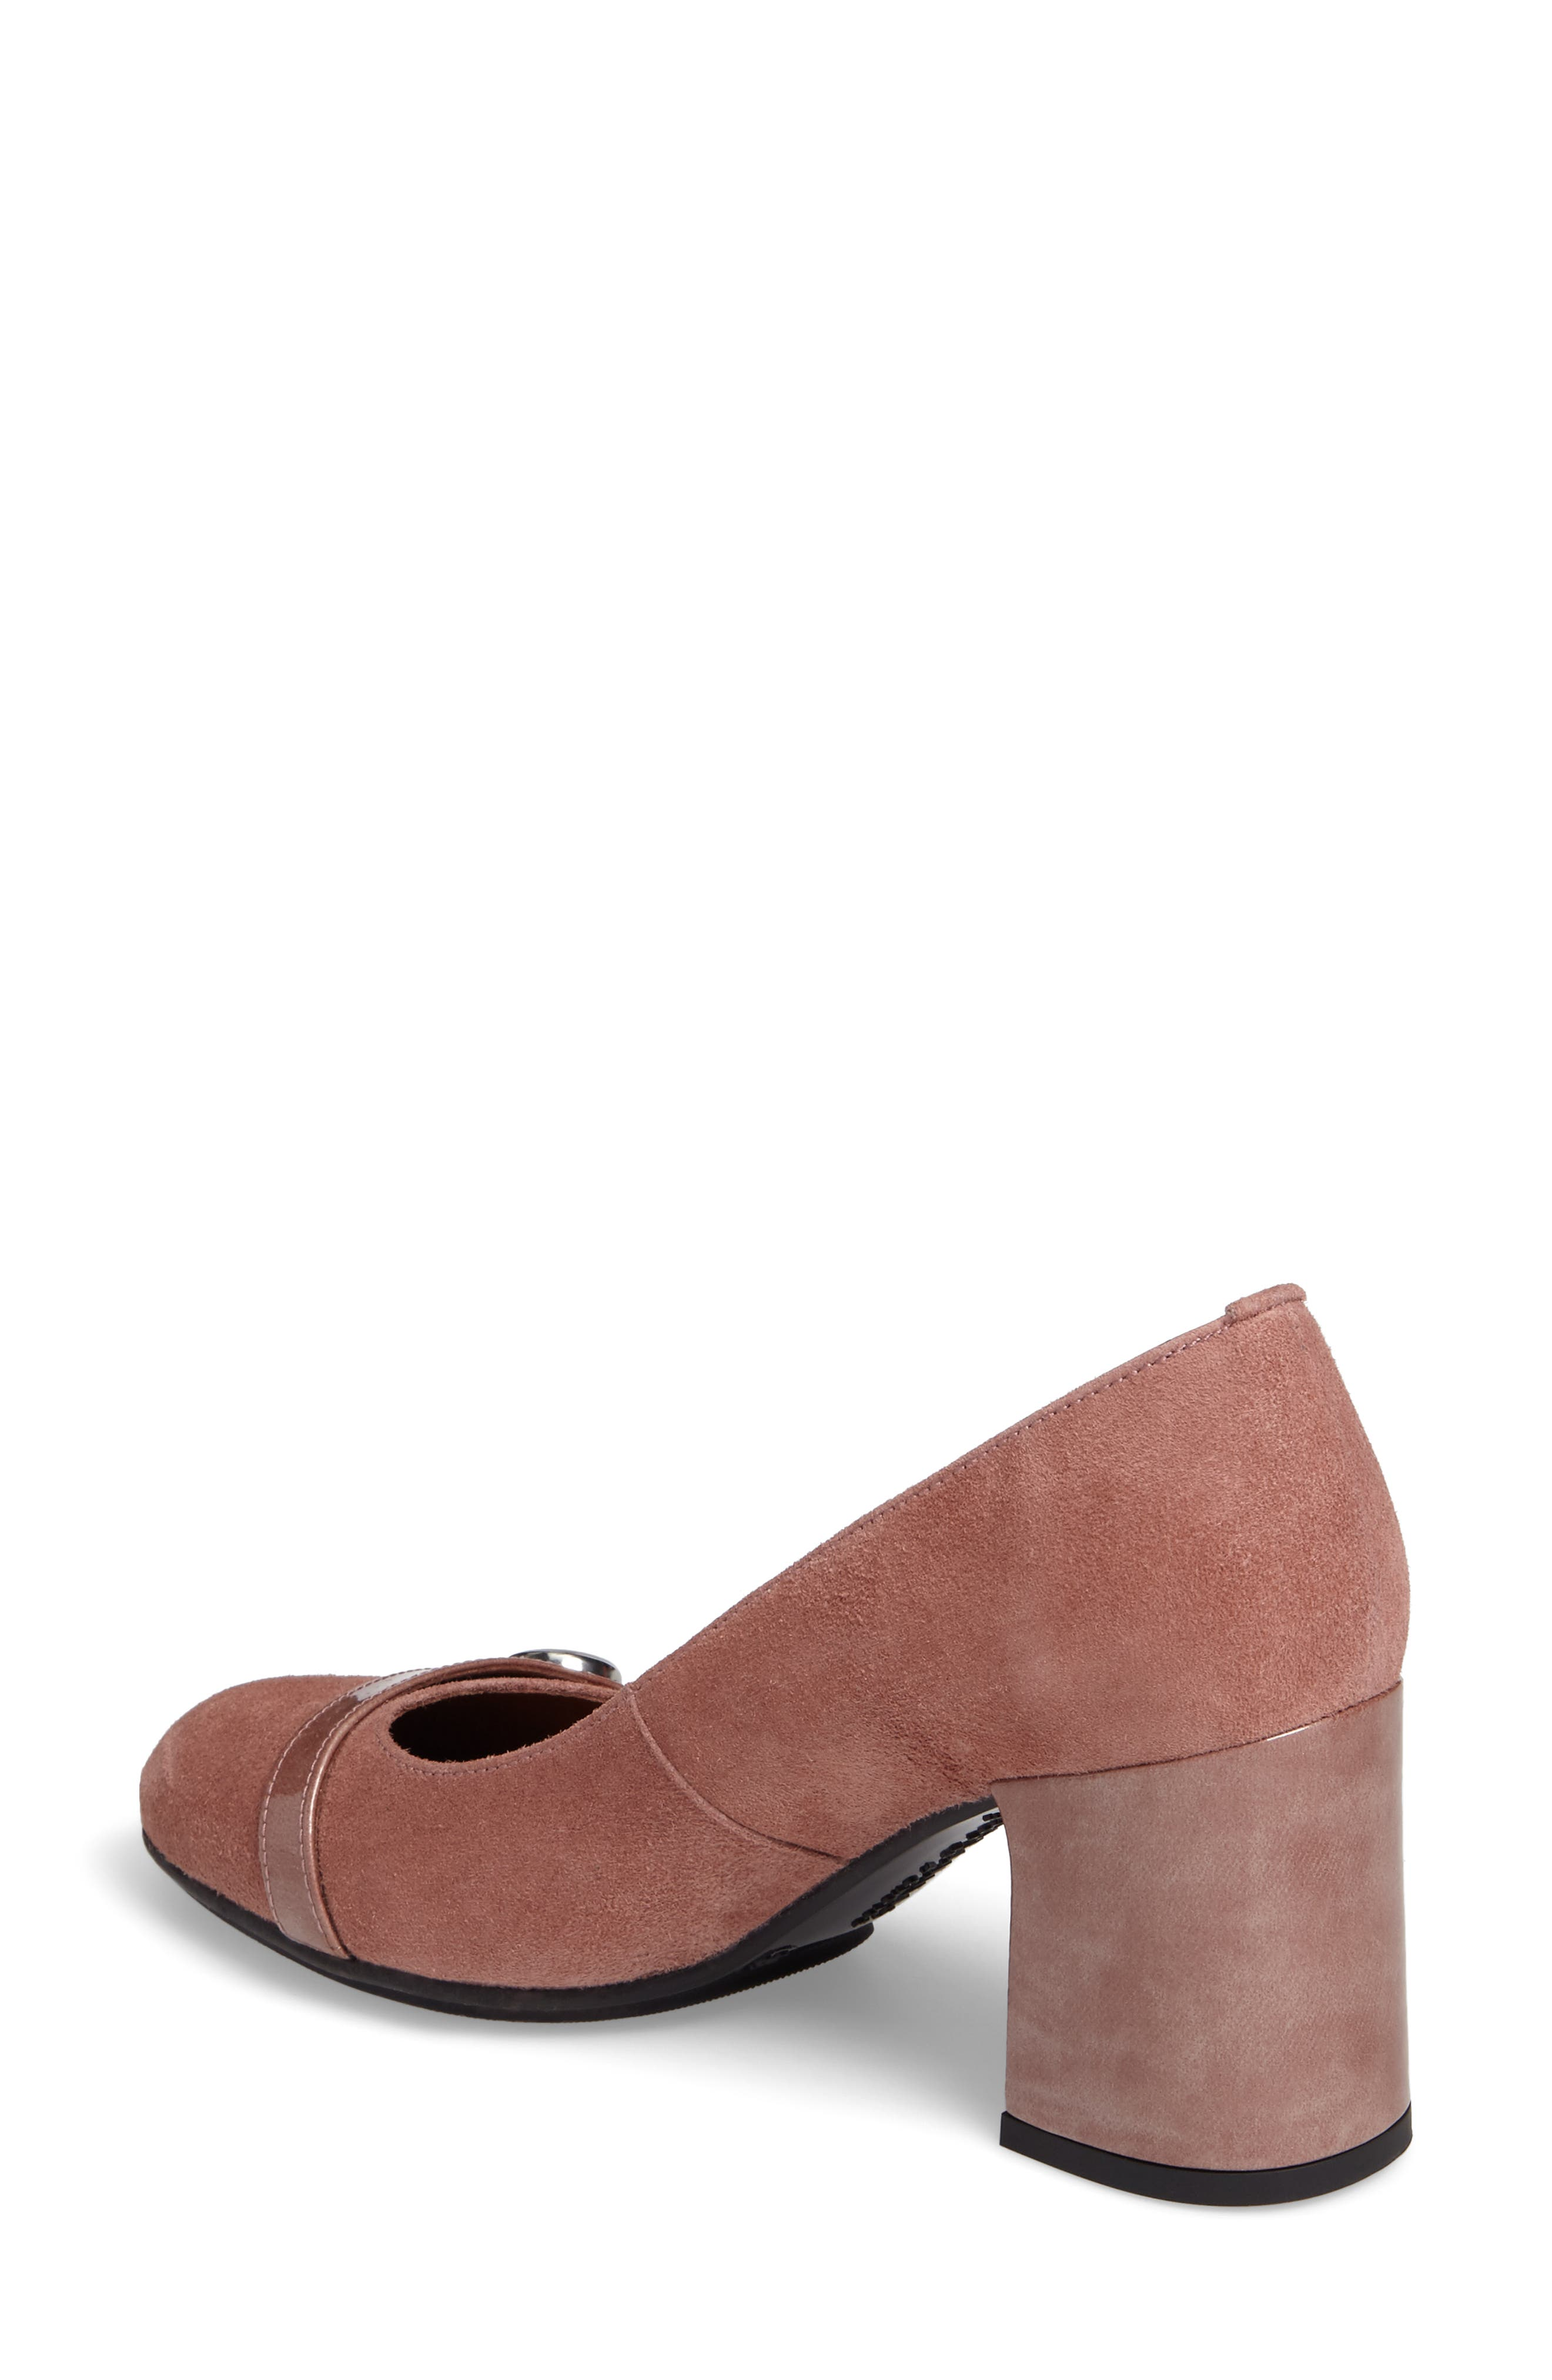 Gretchen Pump,                             Alternate thumbnail 2, color,                             Rose Leather